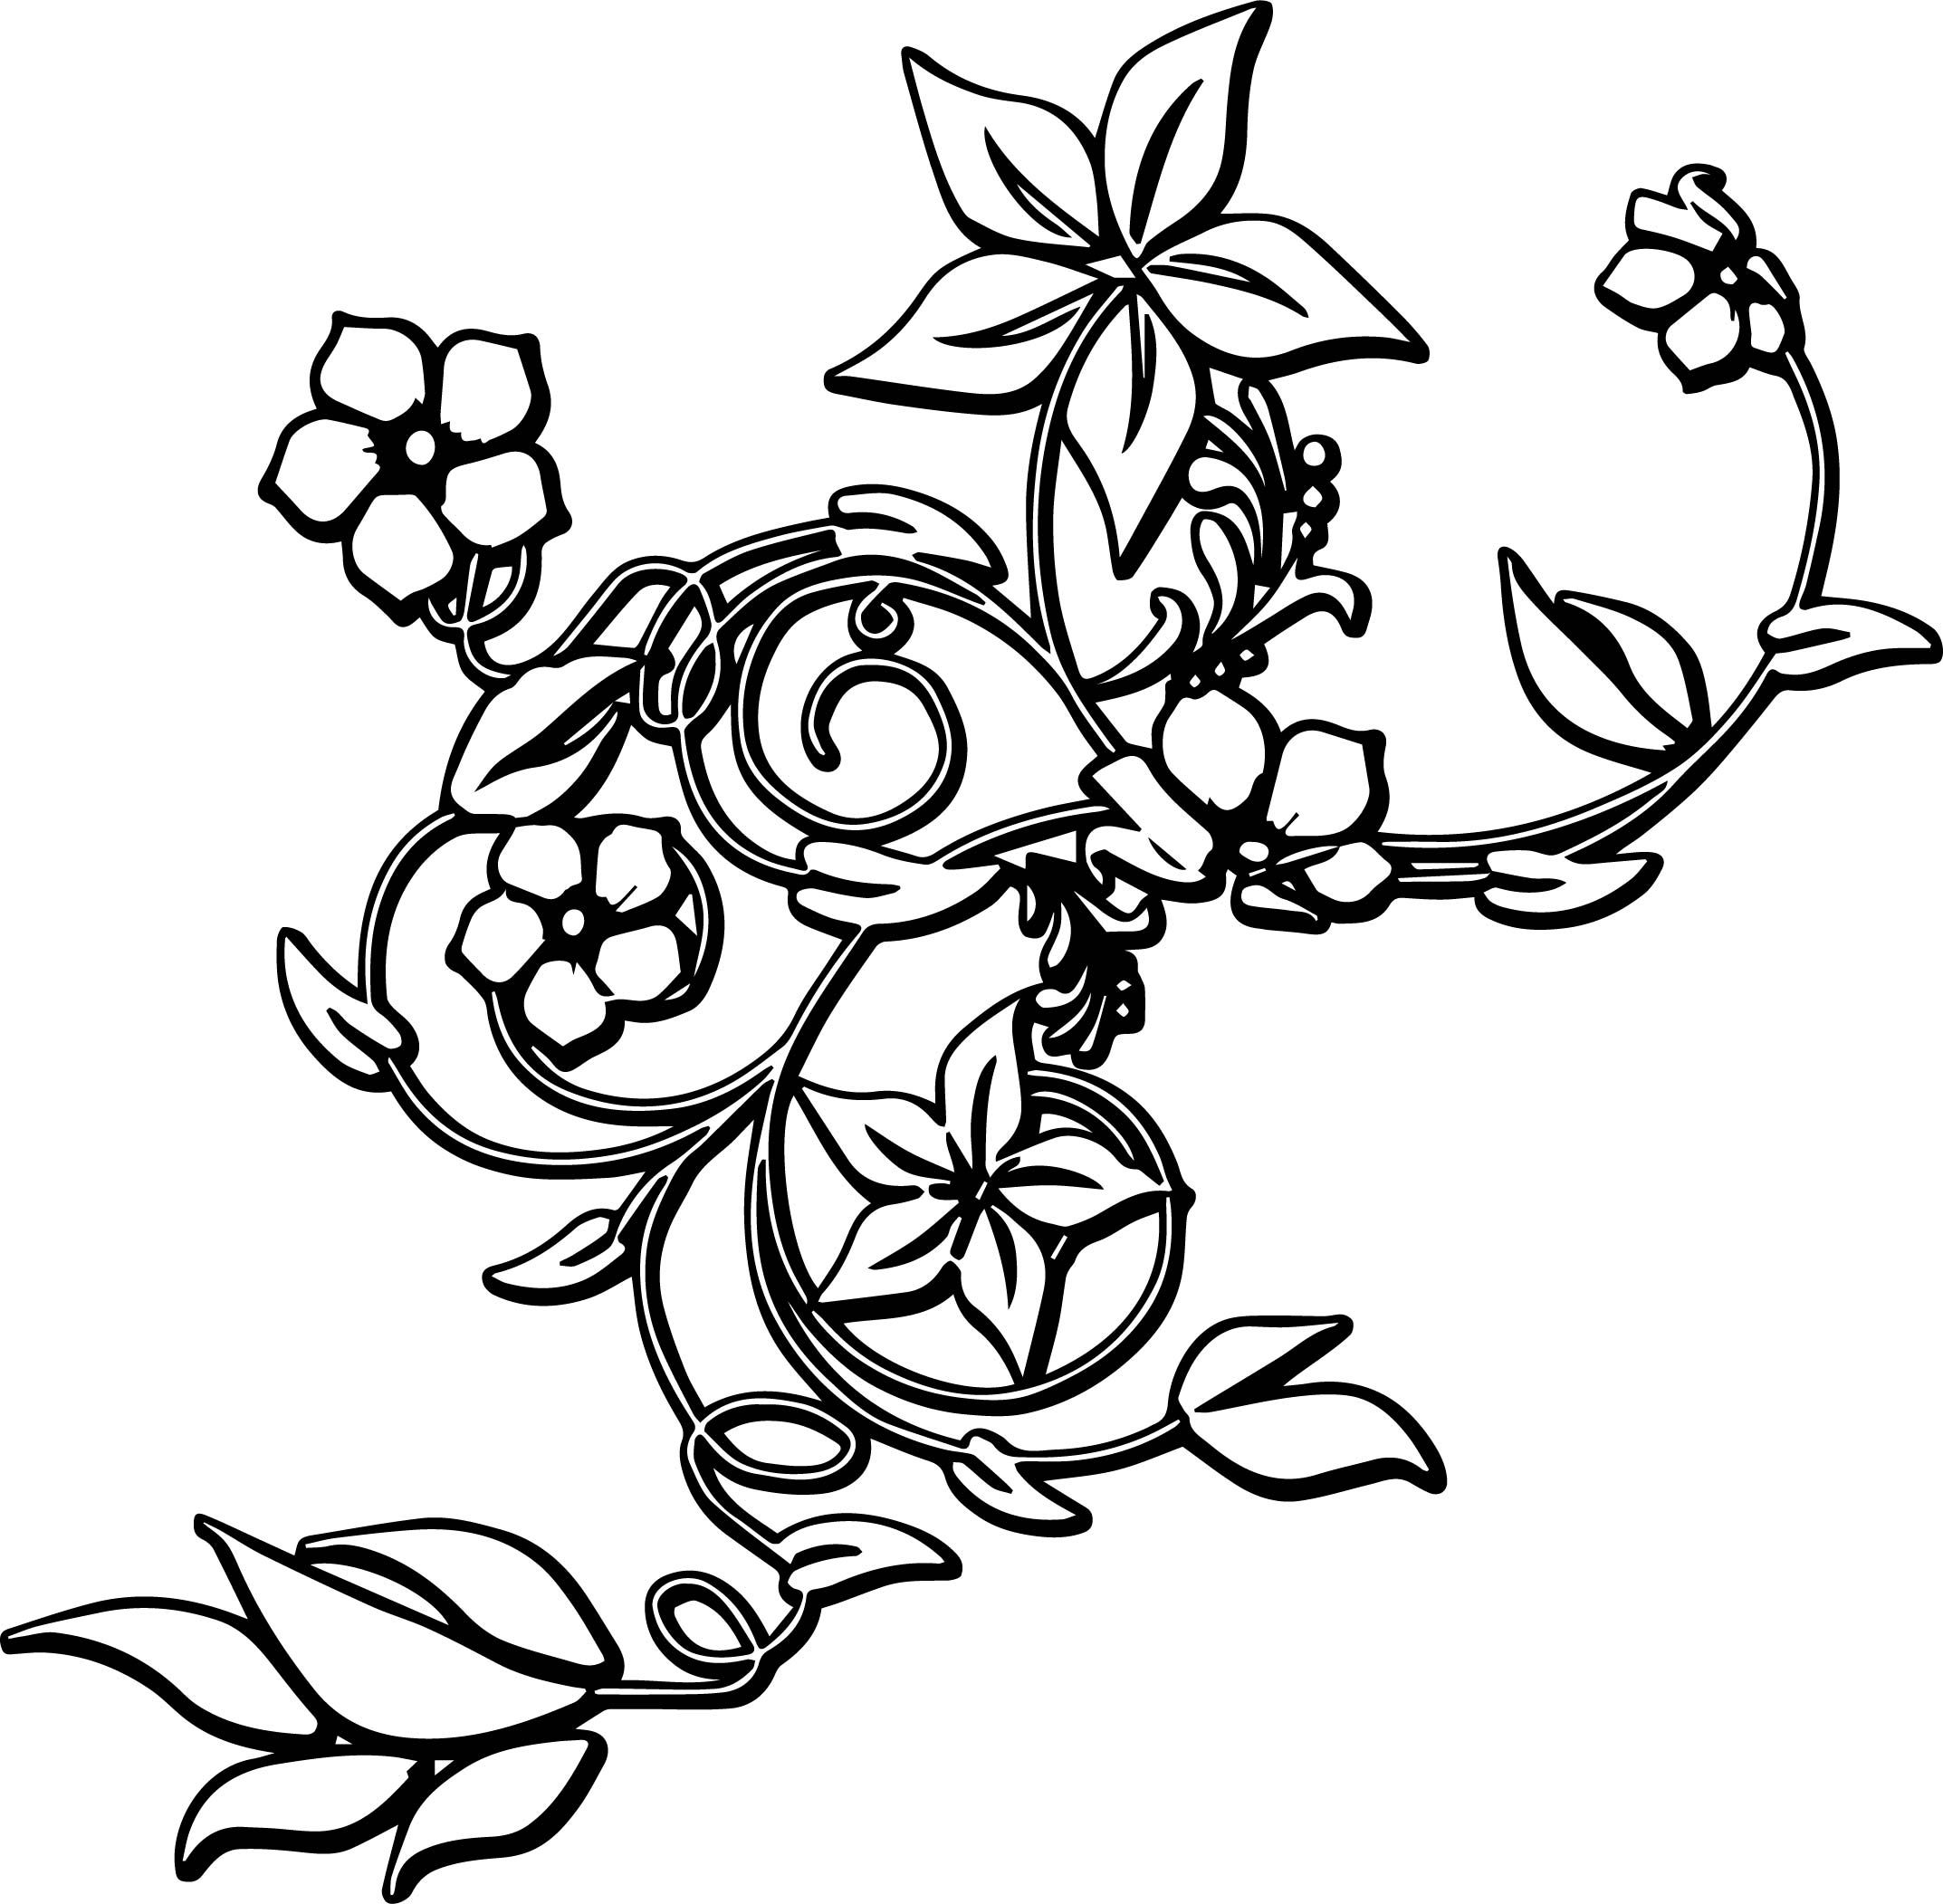 abstract flower coloring pages free printable coloring pages flowers in 2020 flower abstract coloring pages flower